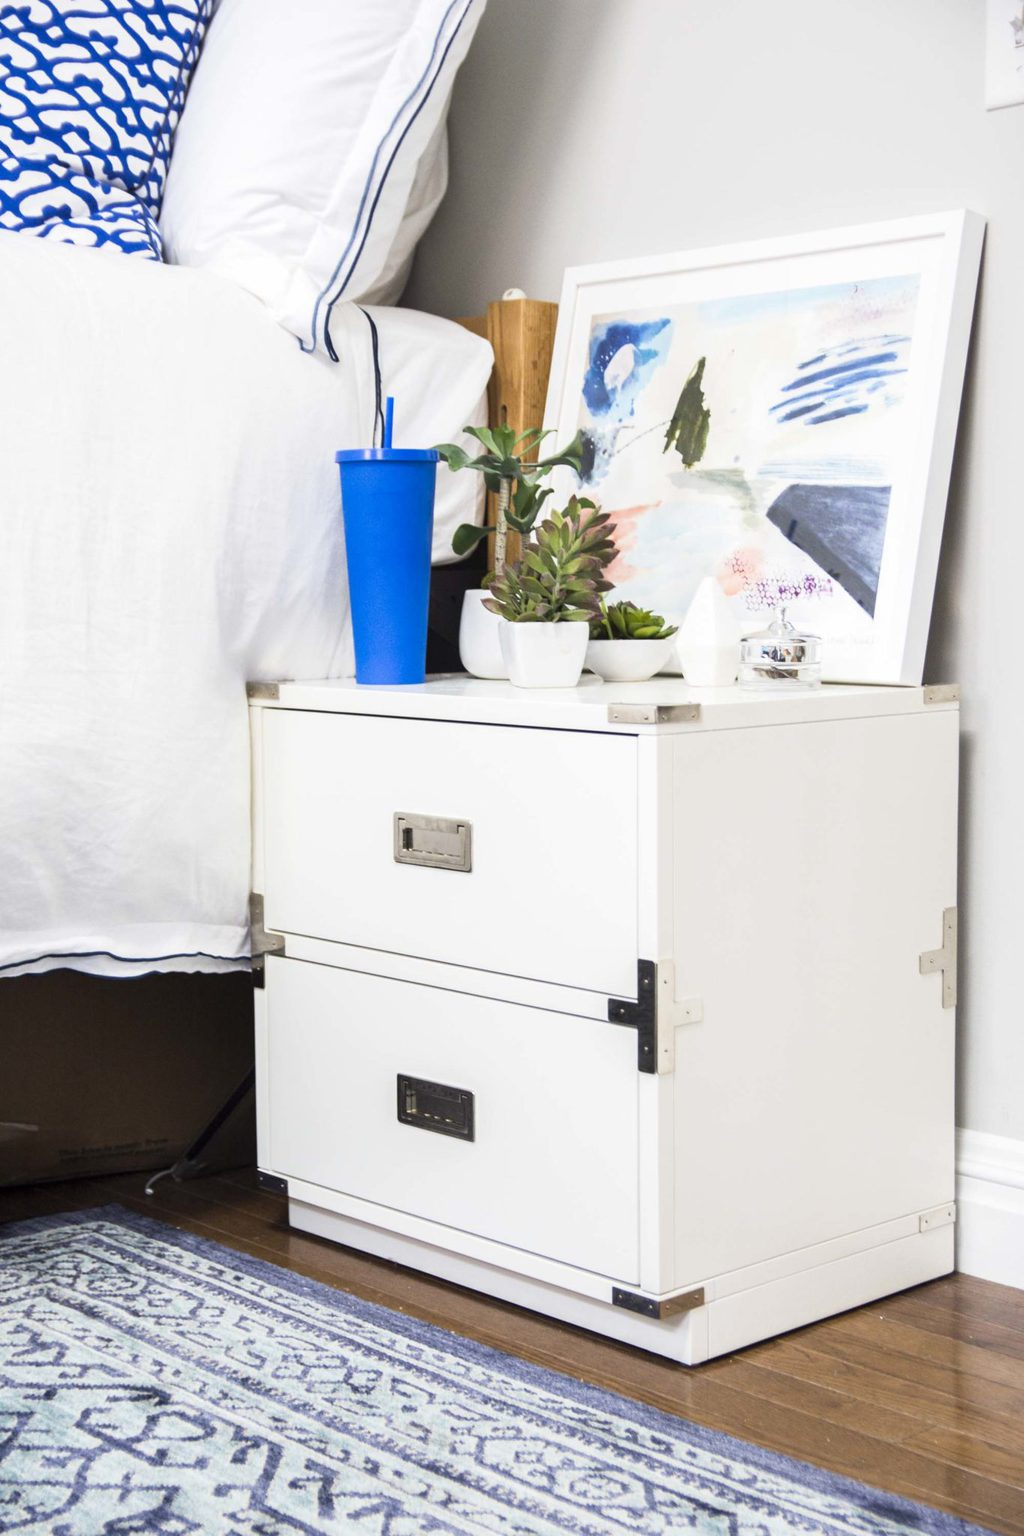 Blue and white bedroom dorm room design on Thou Swell @thouswellblog